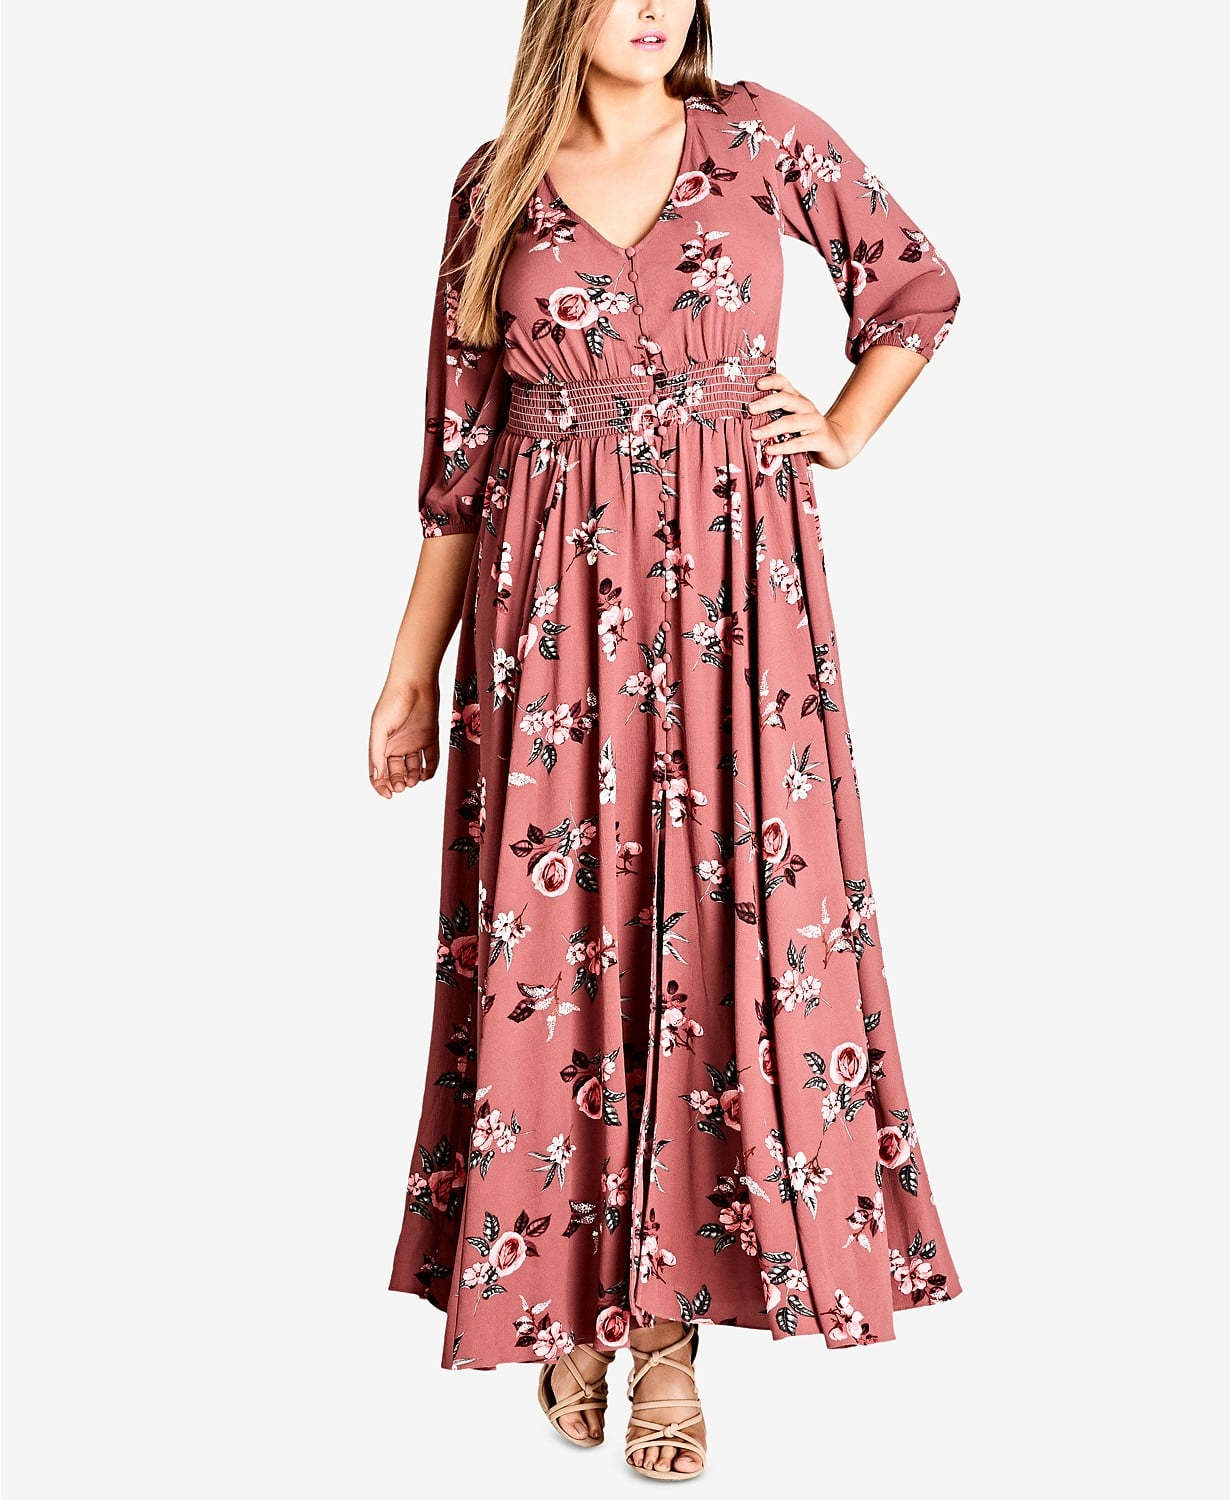 City Chic Trendy Plus Size Floral-Print Maxi Dress | Hold Up ...